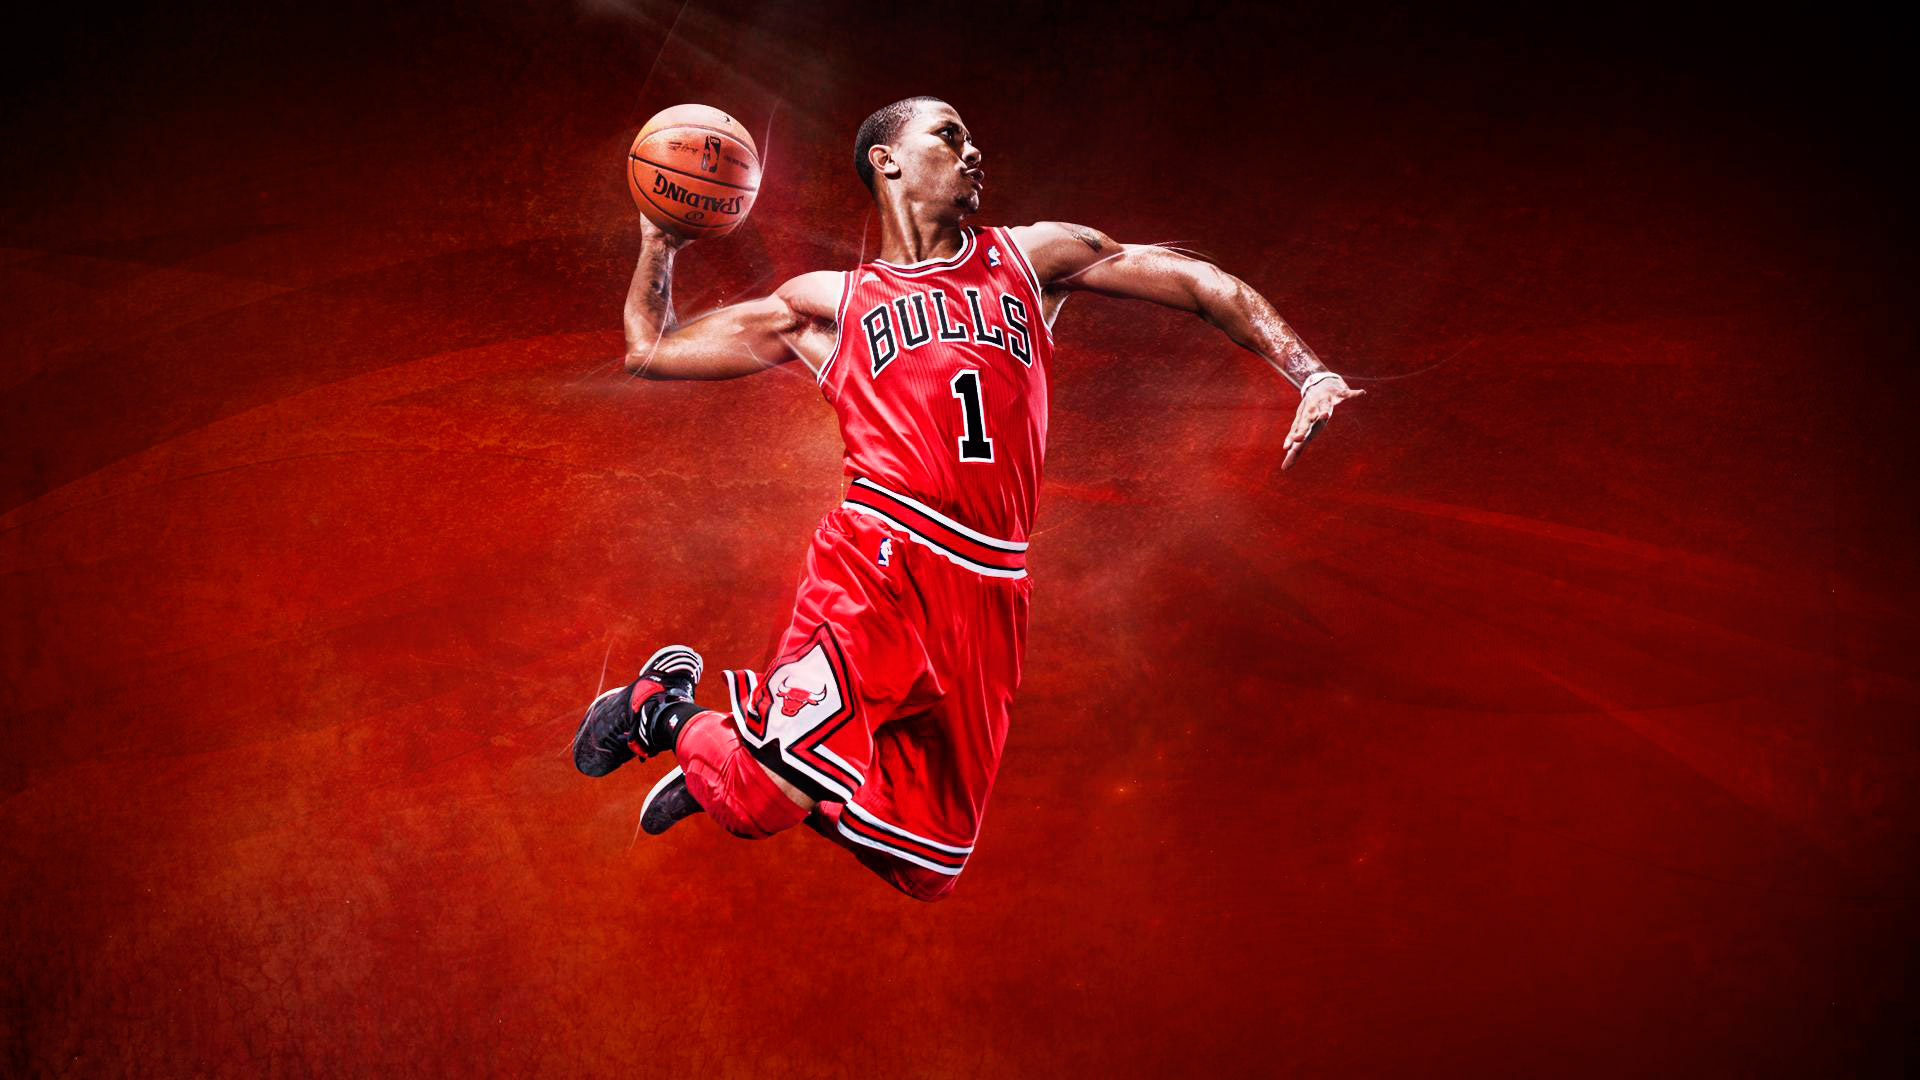 derrick rose wallpaper iphone - photo #25